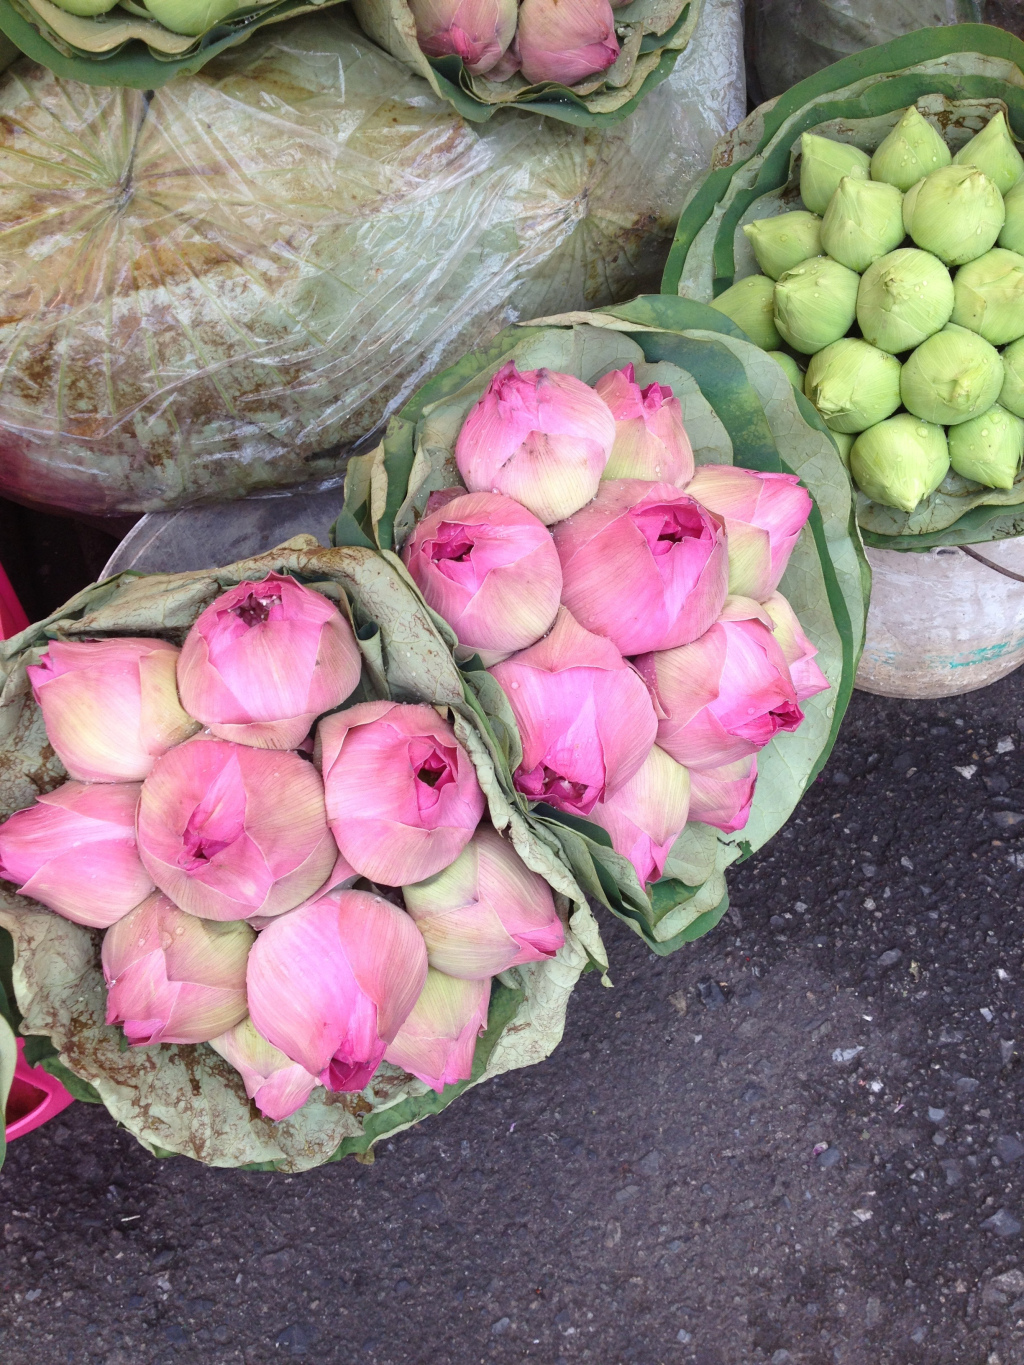 Fresh Lotus Flowers–I'd never seen these in such abundance.